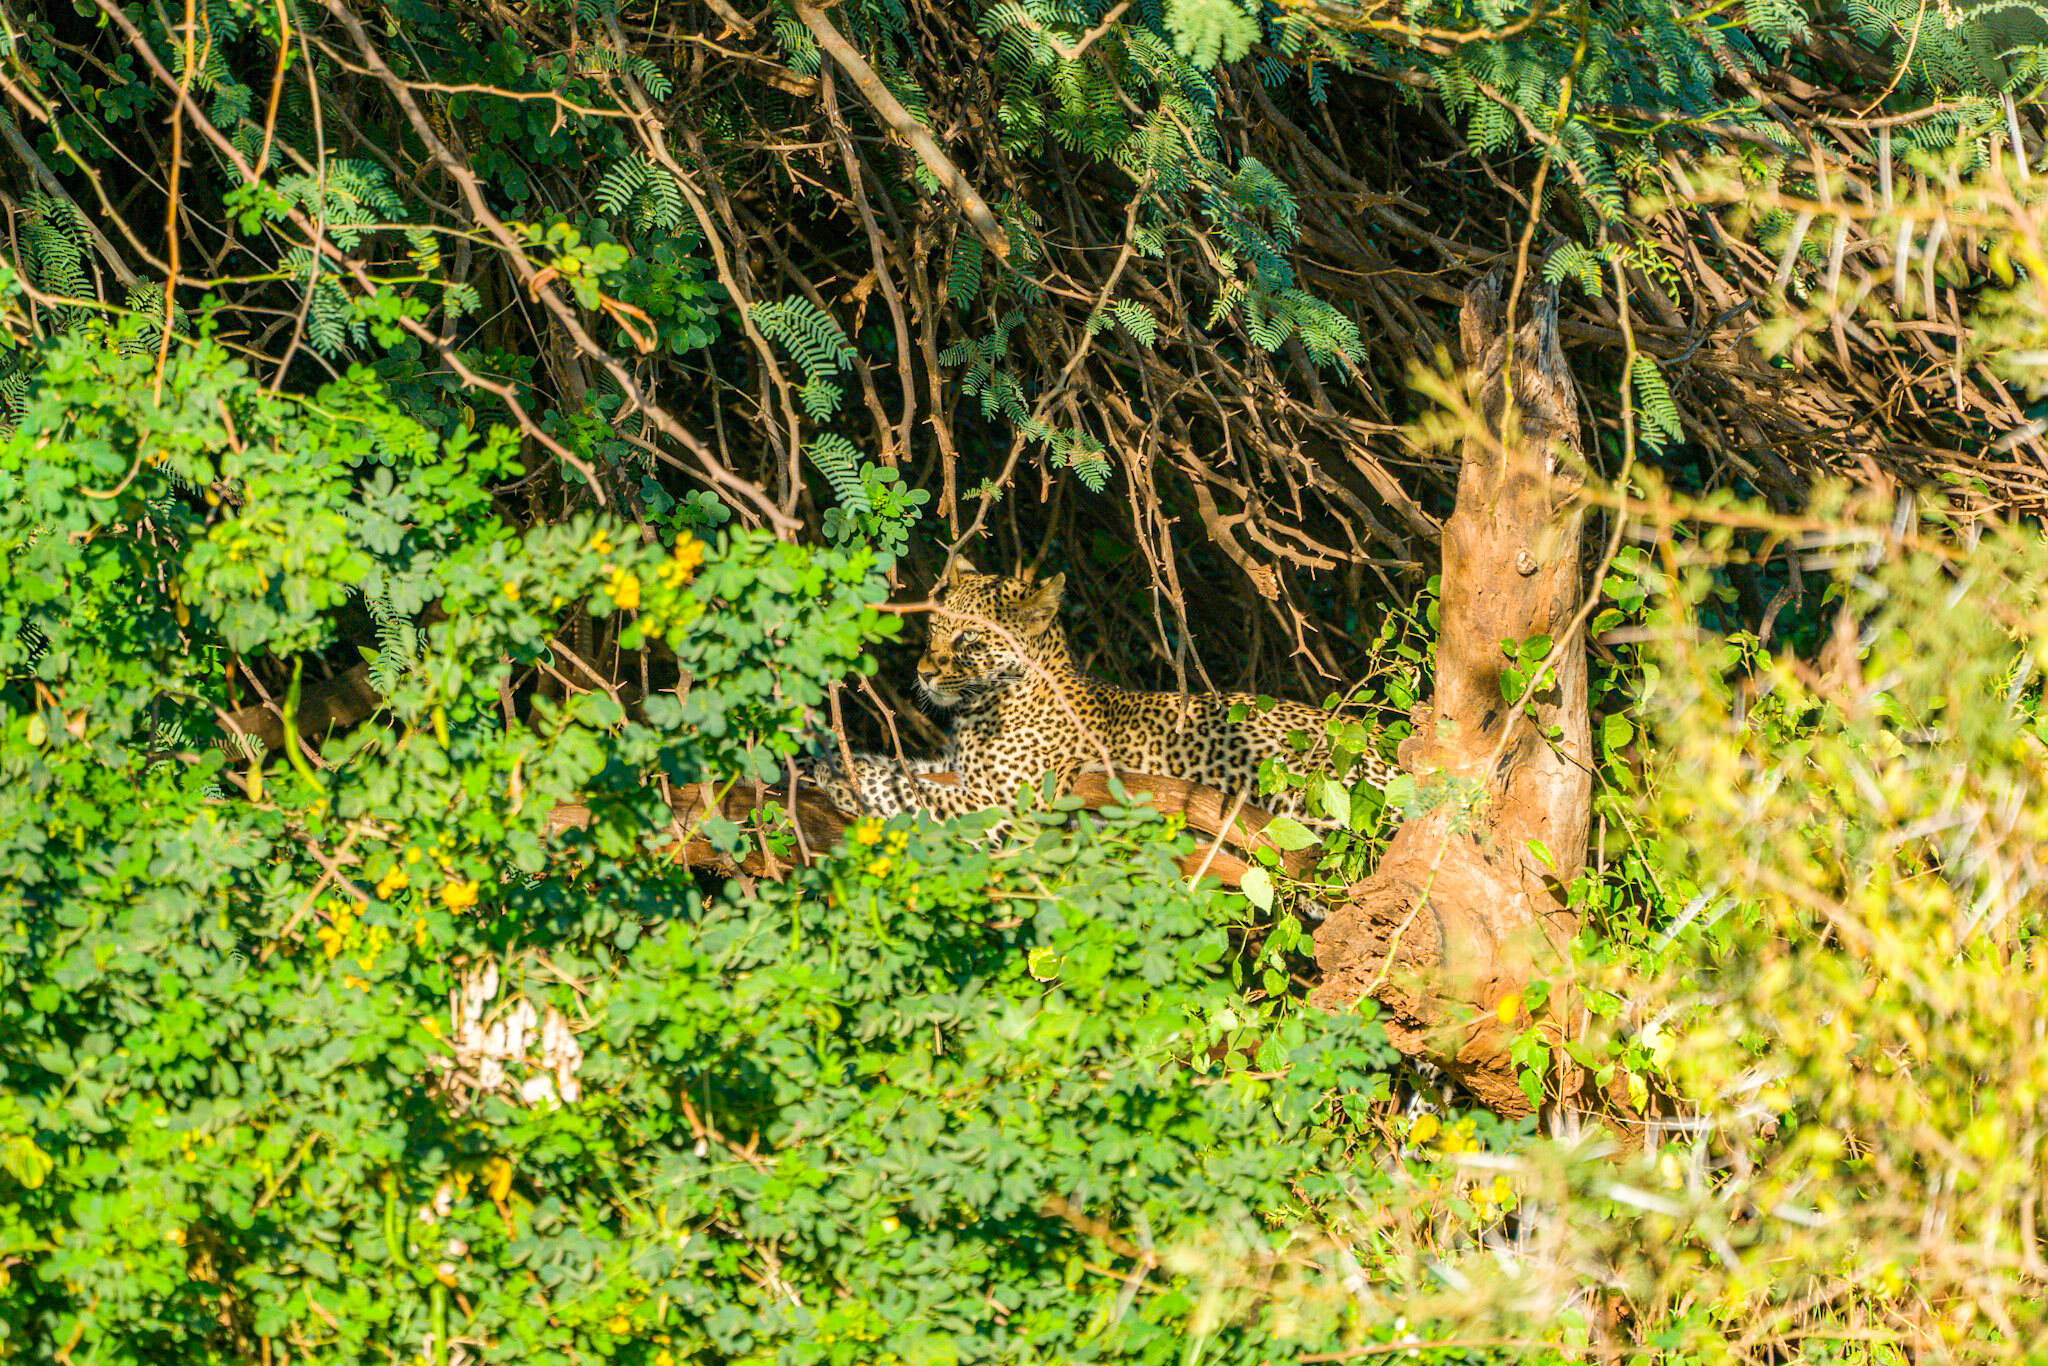 Can you spot the leopard? pun intended